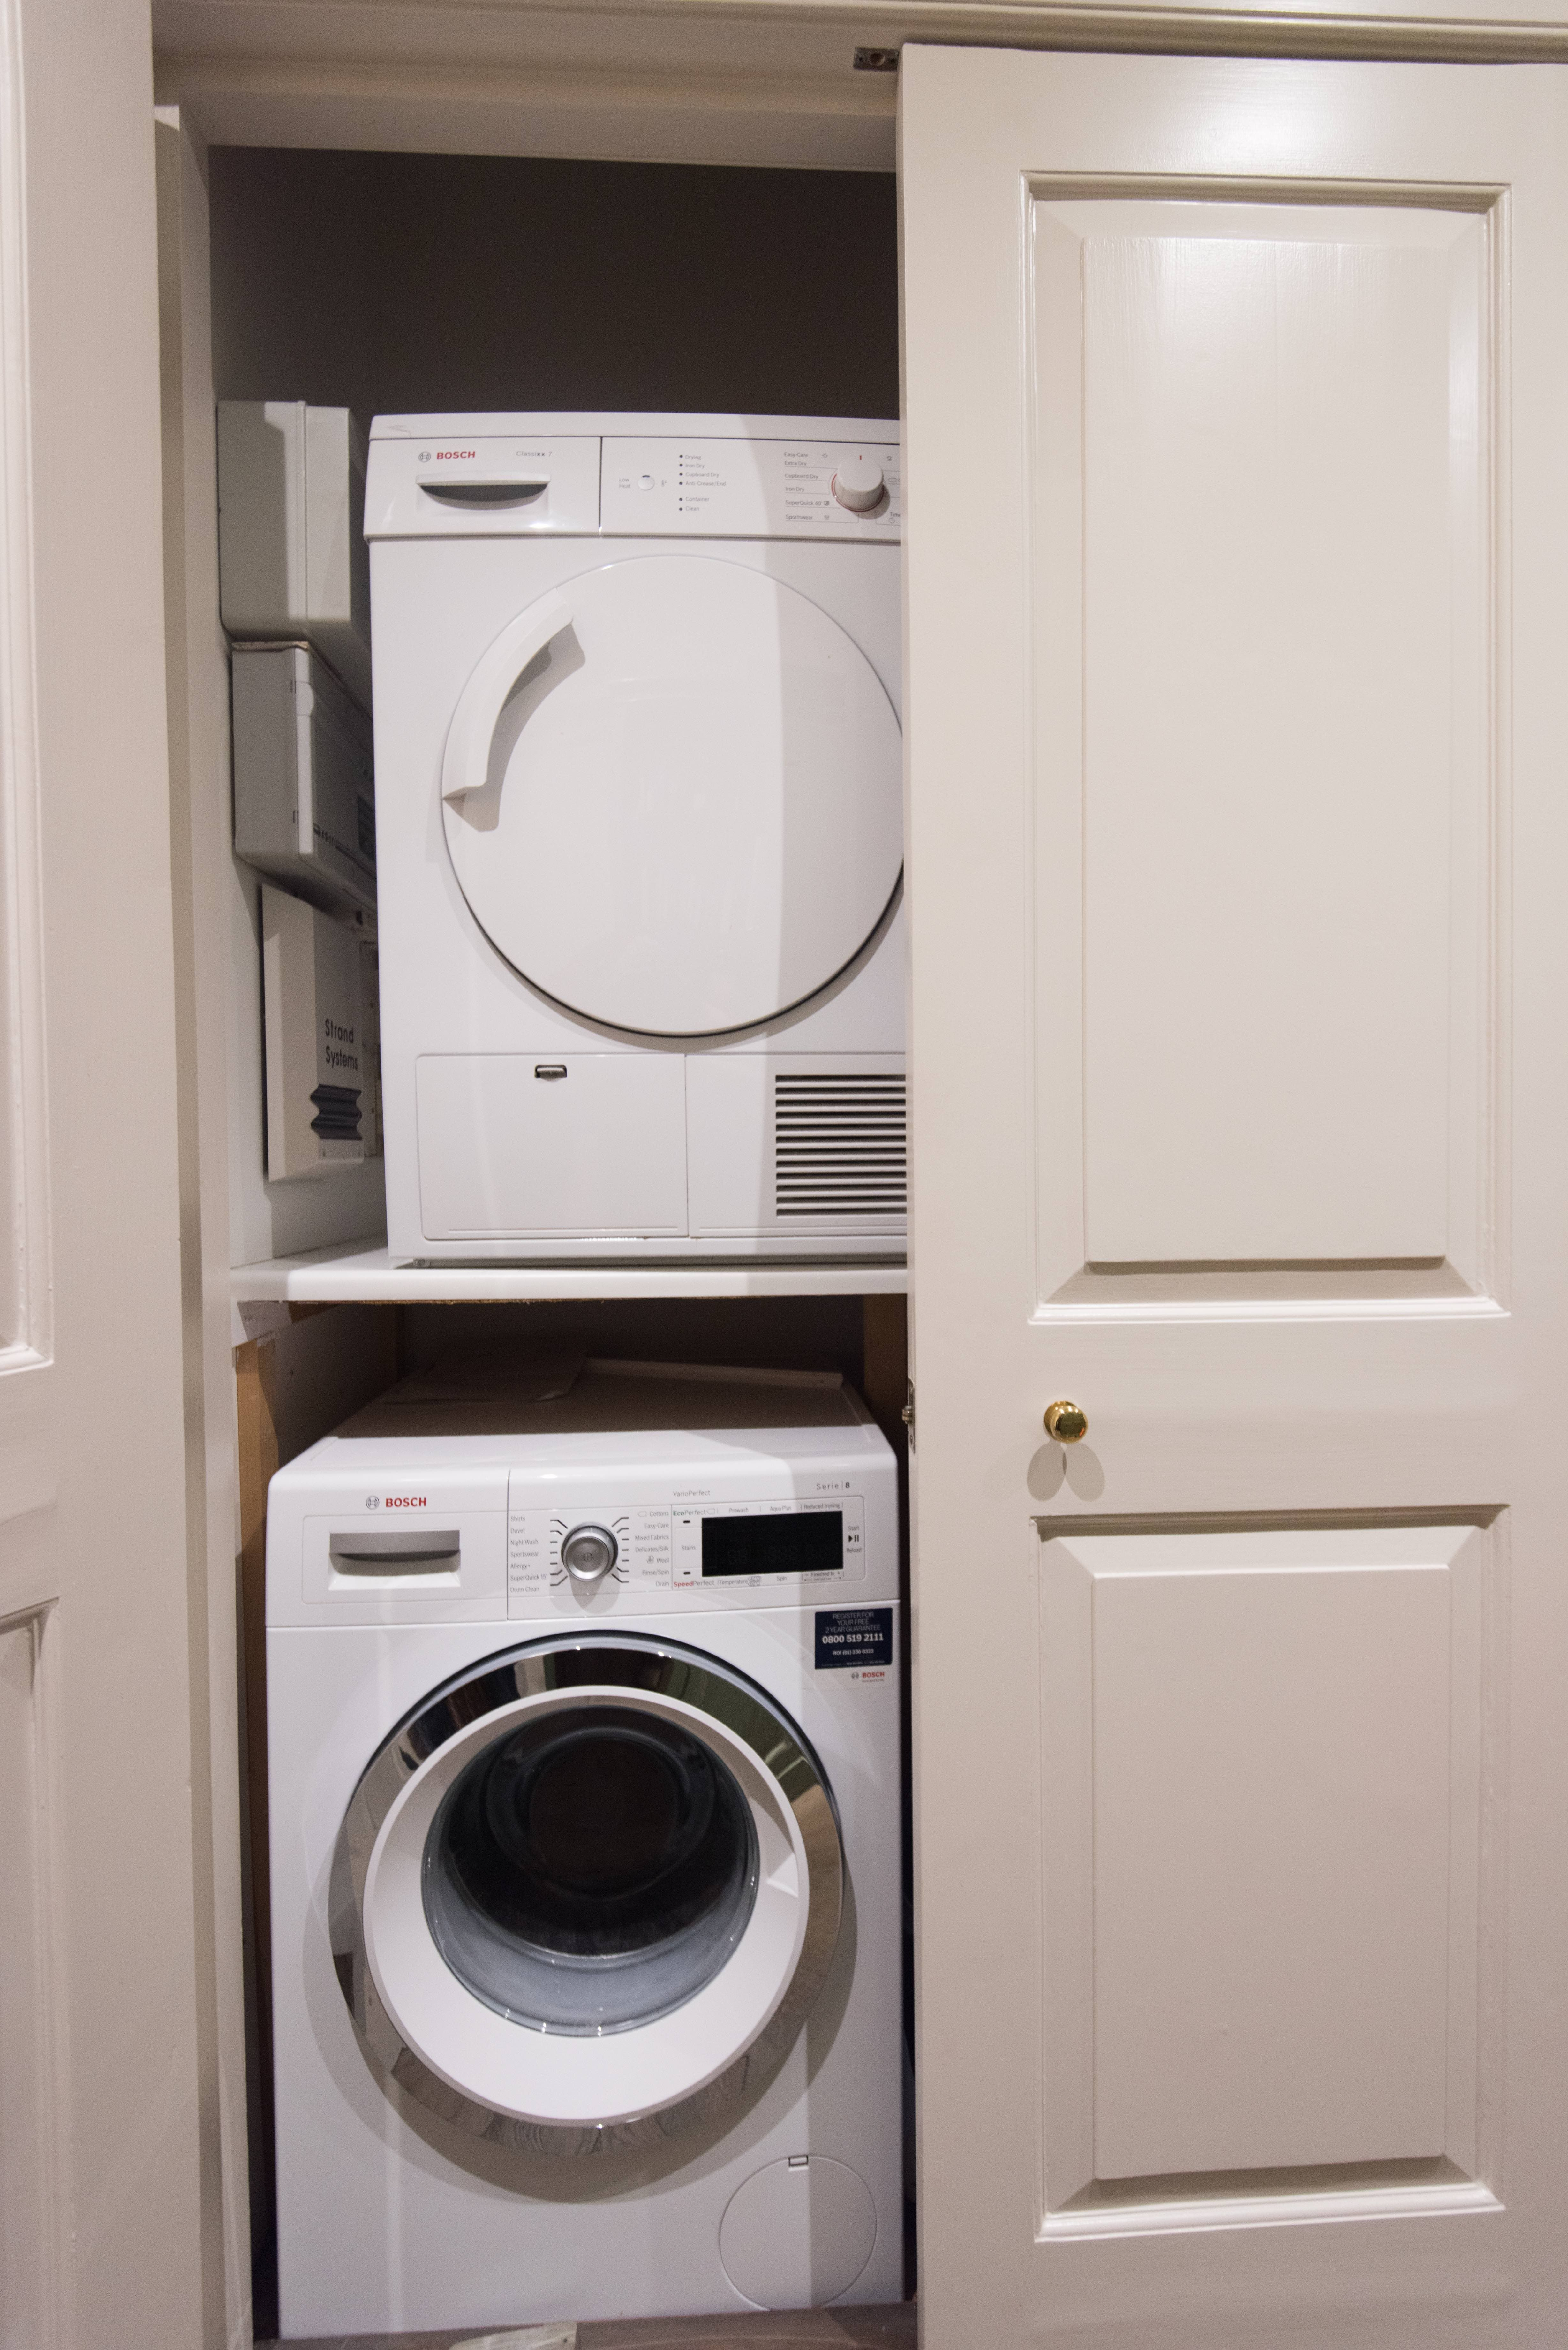 The Corridor Cupboards Were Re Painted And Re Purposed To Conceal The Washing Machine Tumble Dryer Water Softener And Fu Washer And Dryer White Washer Washer